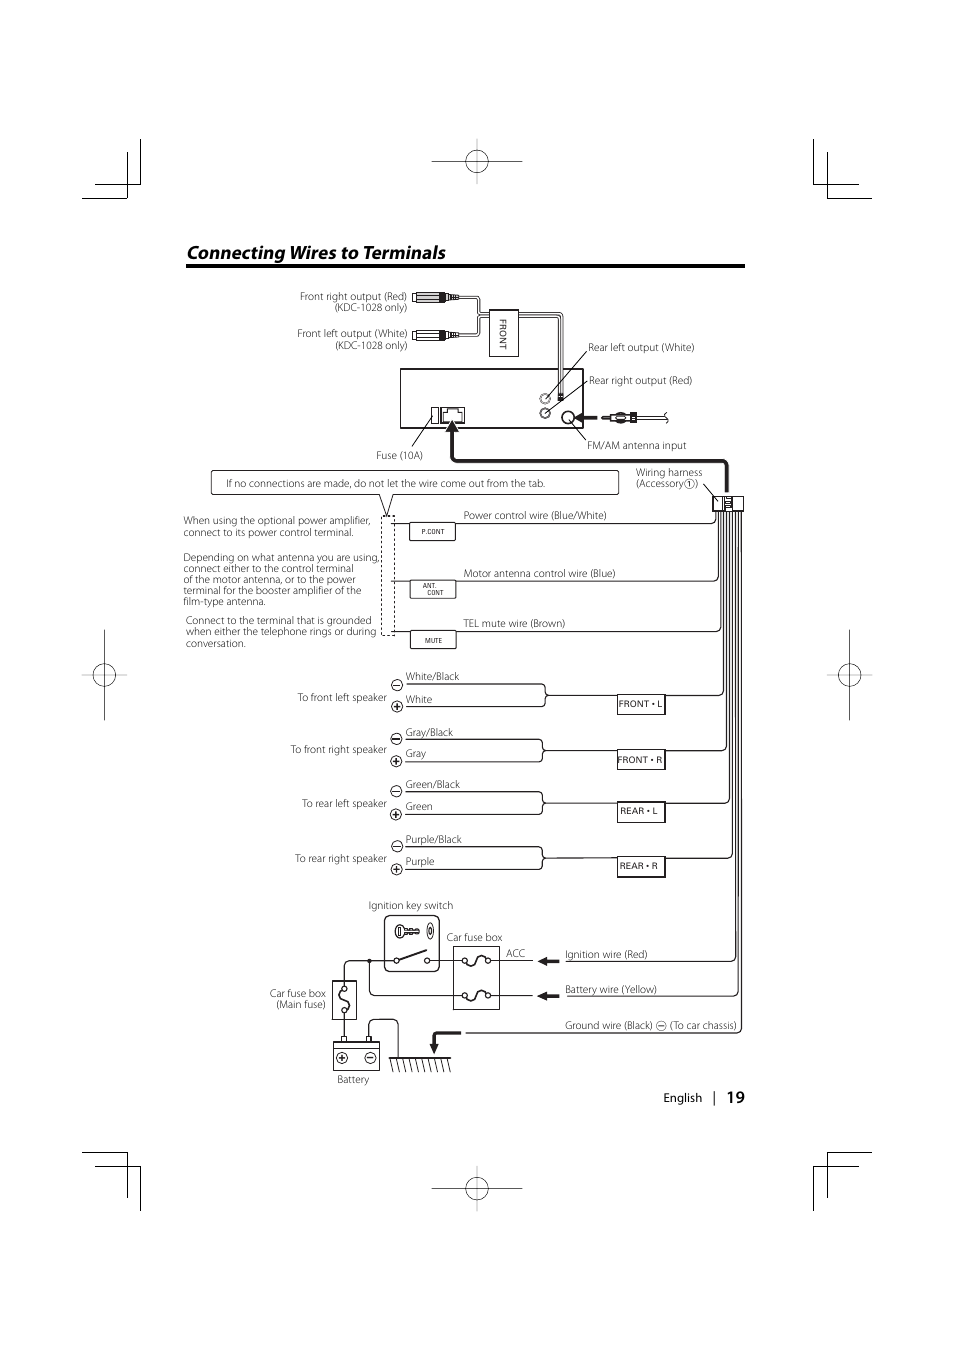 kenwood kdc 128cr page19 kenwood kdc 2019 wiring diagram kenwood wiring diagrams collection kenwood ddx512 wiring diagram at aneh.co